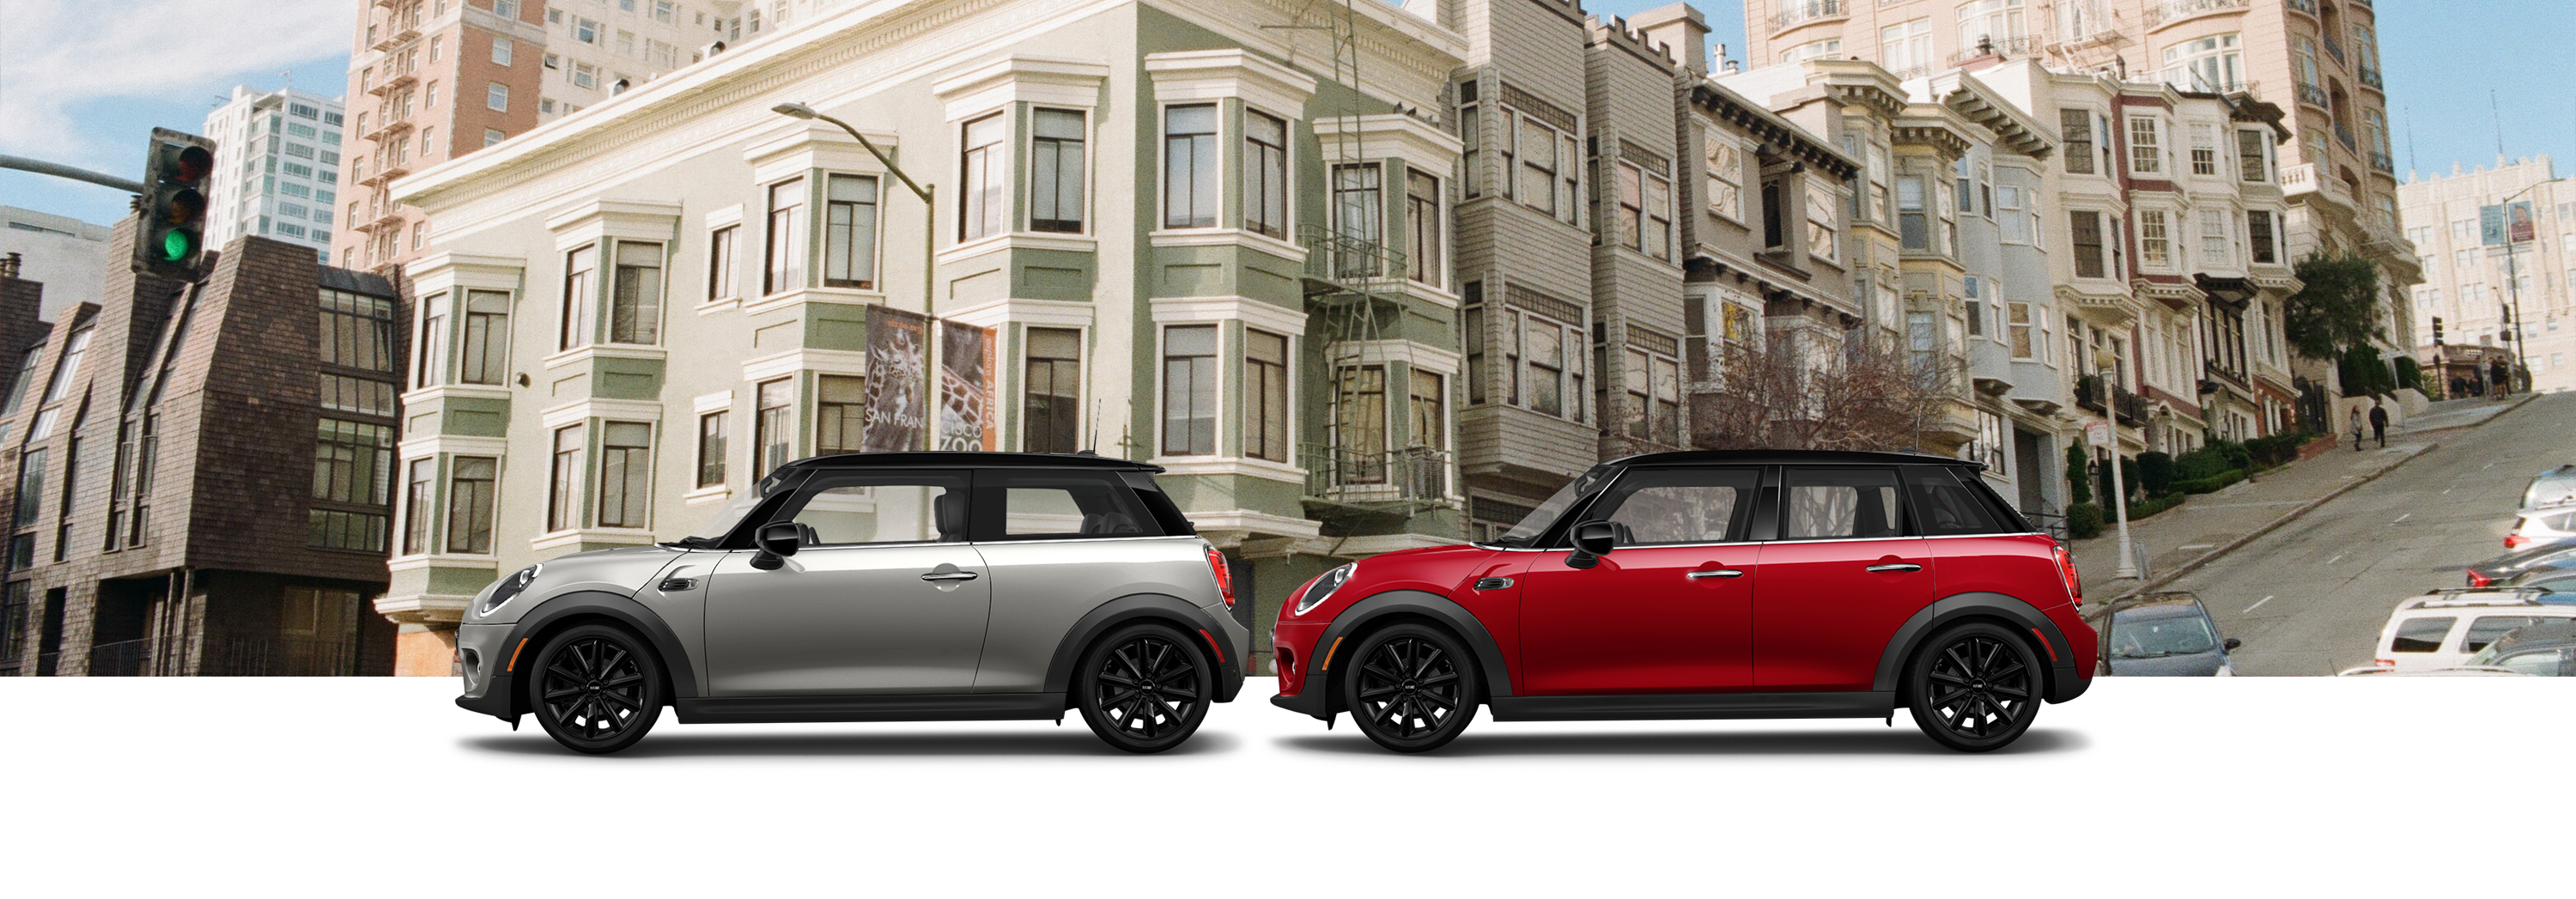 Oxford Edition MINI  Cooper Hardtop  2 Door and Oxford Edition MINI Cooper Hardtop 4 Door in front of residential area of a city.